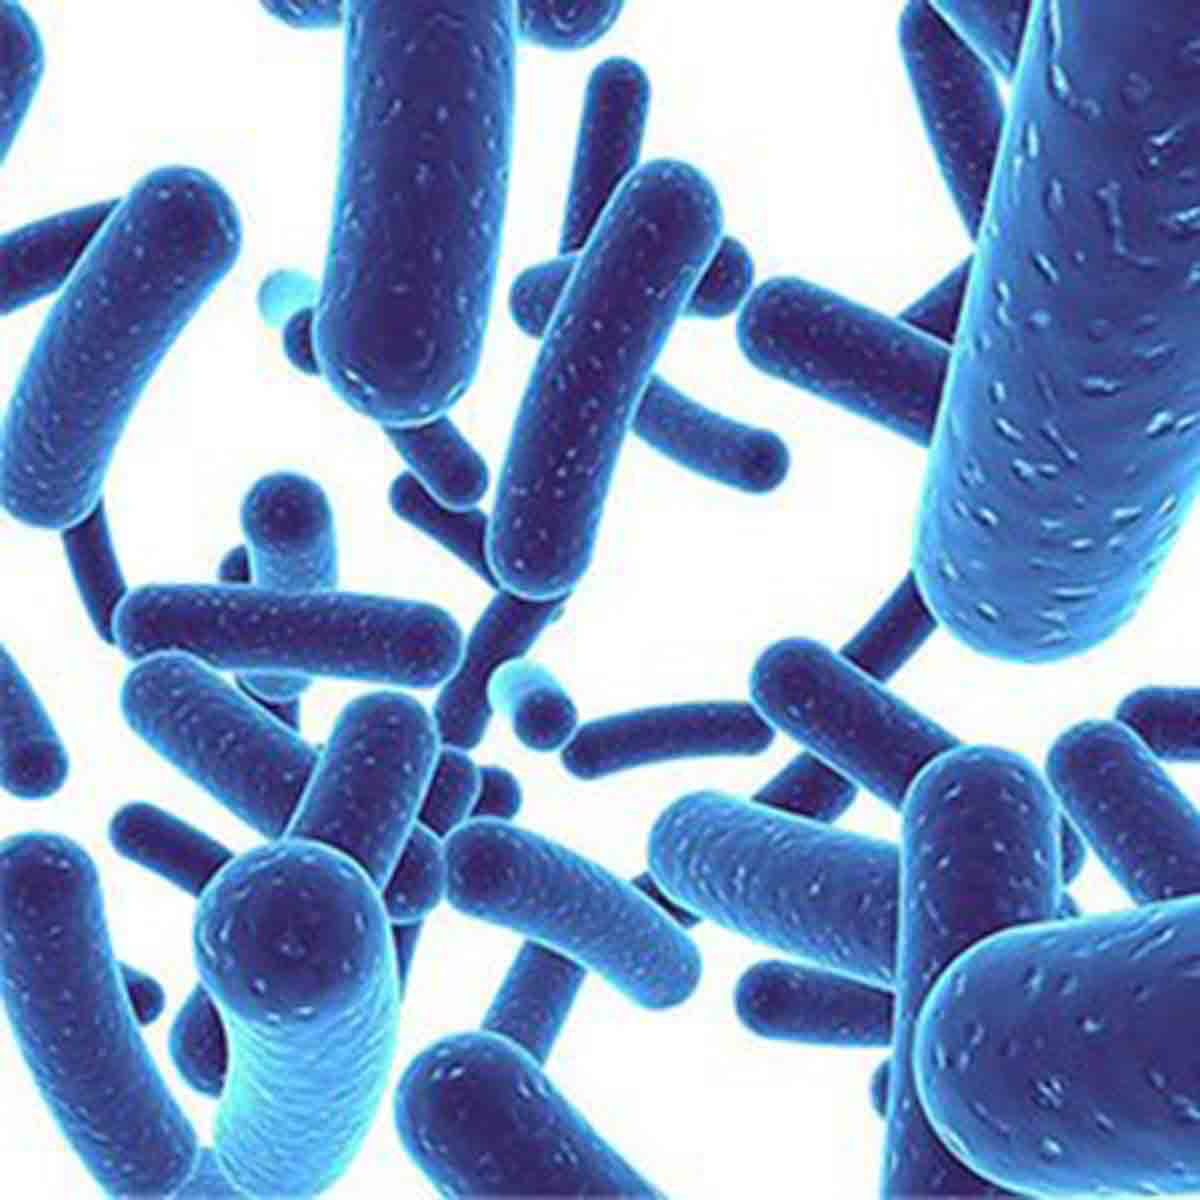 Are Probiotics And Prebiotics Important For Health?